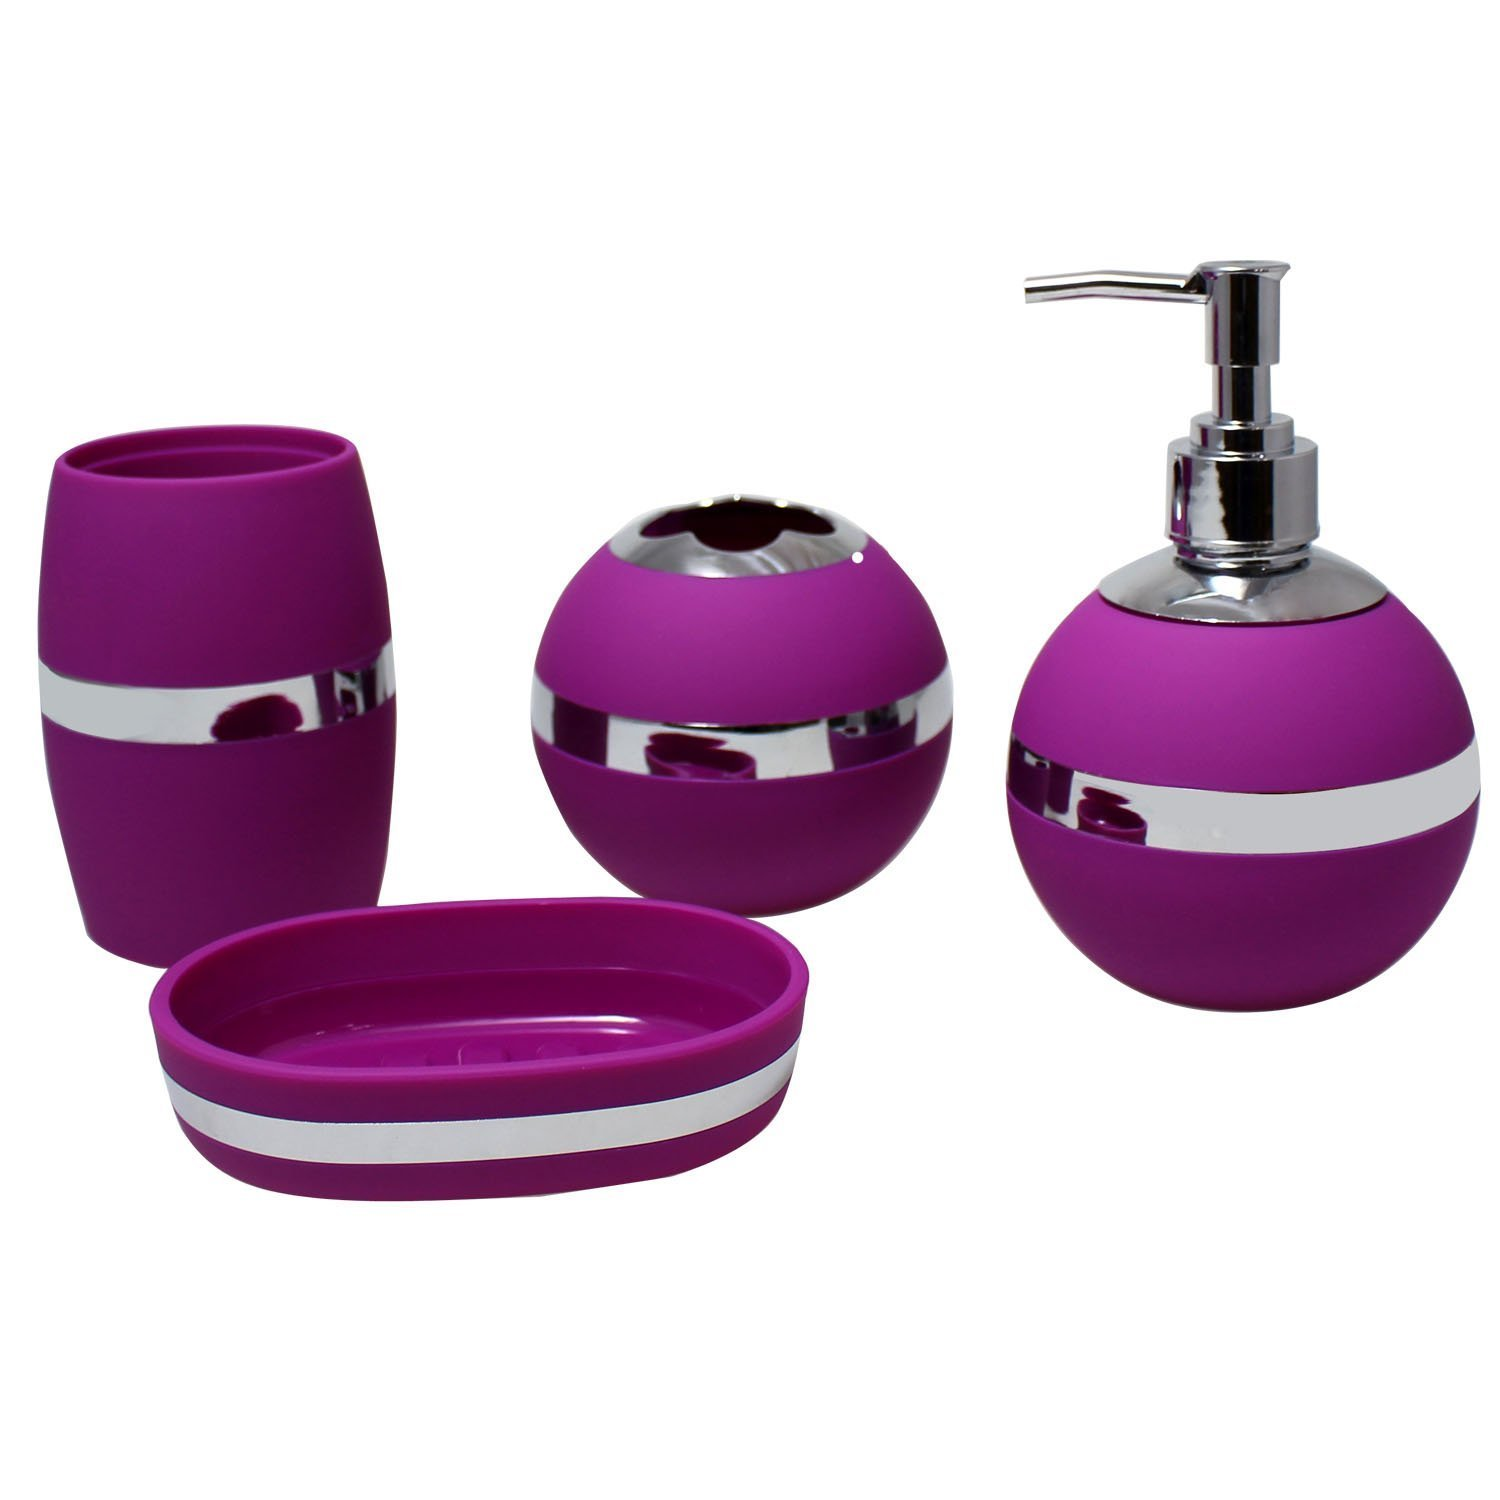 Purple bathroom accessories sets design cool ideas for home - Purple bathroom accessories uk ...